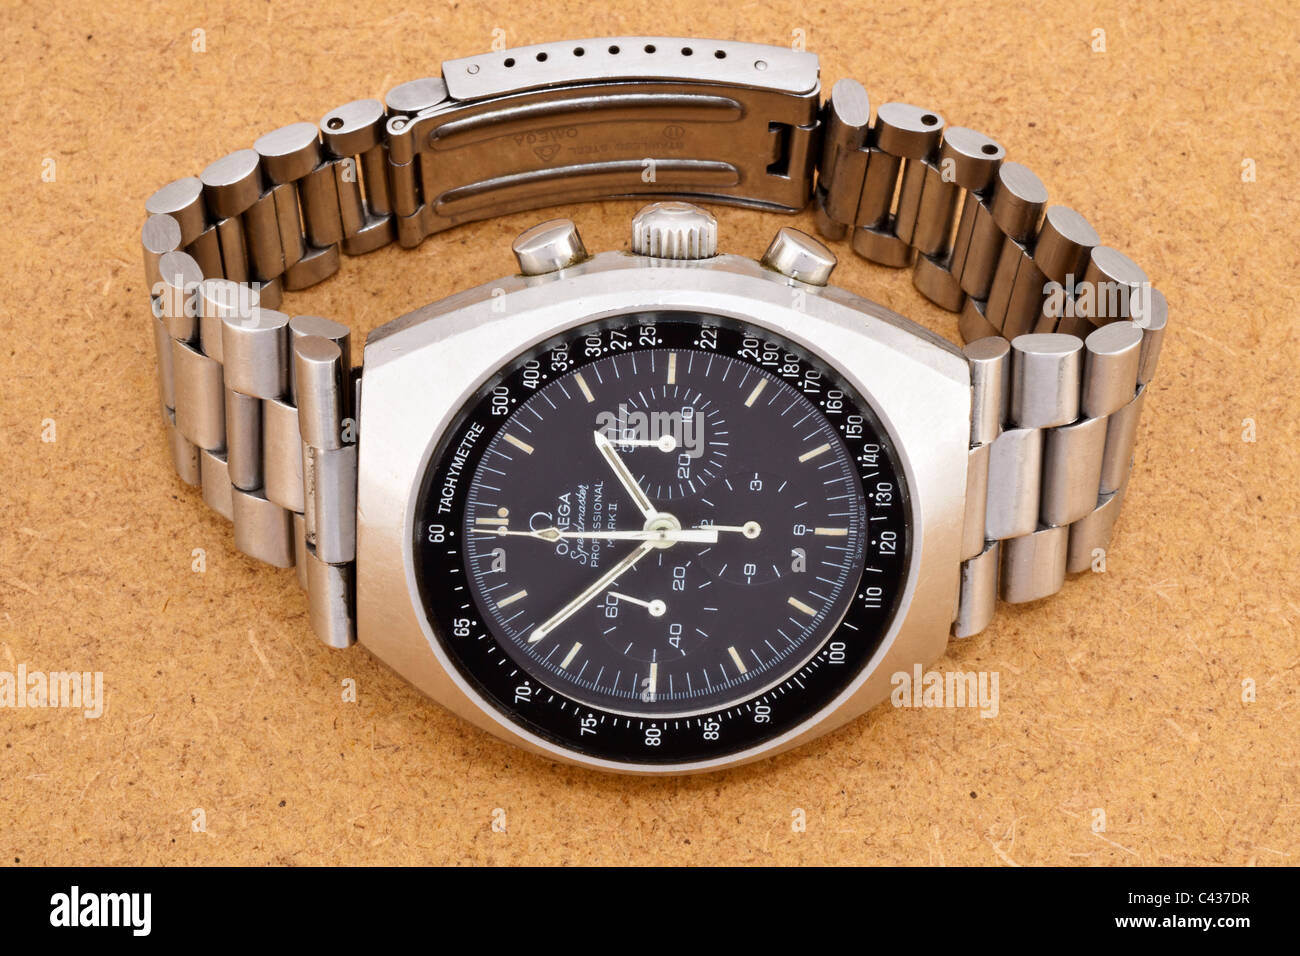 Omega Speedmaster Professional Mark II stainless steel Swiss chronograph wrist watch with black dial and white hands - Stock Image